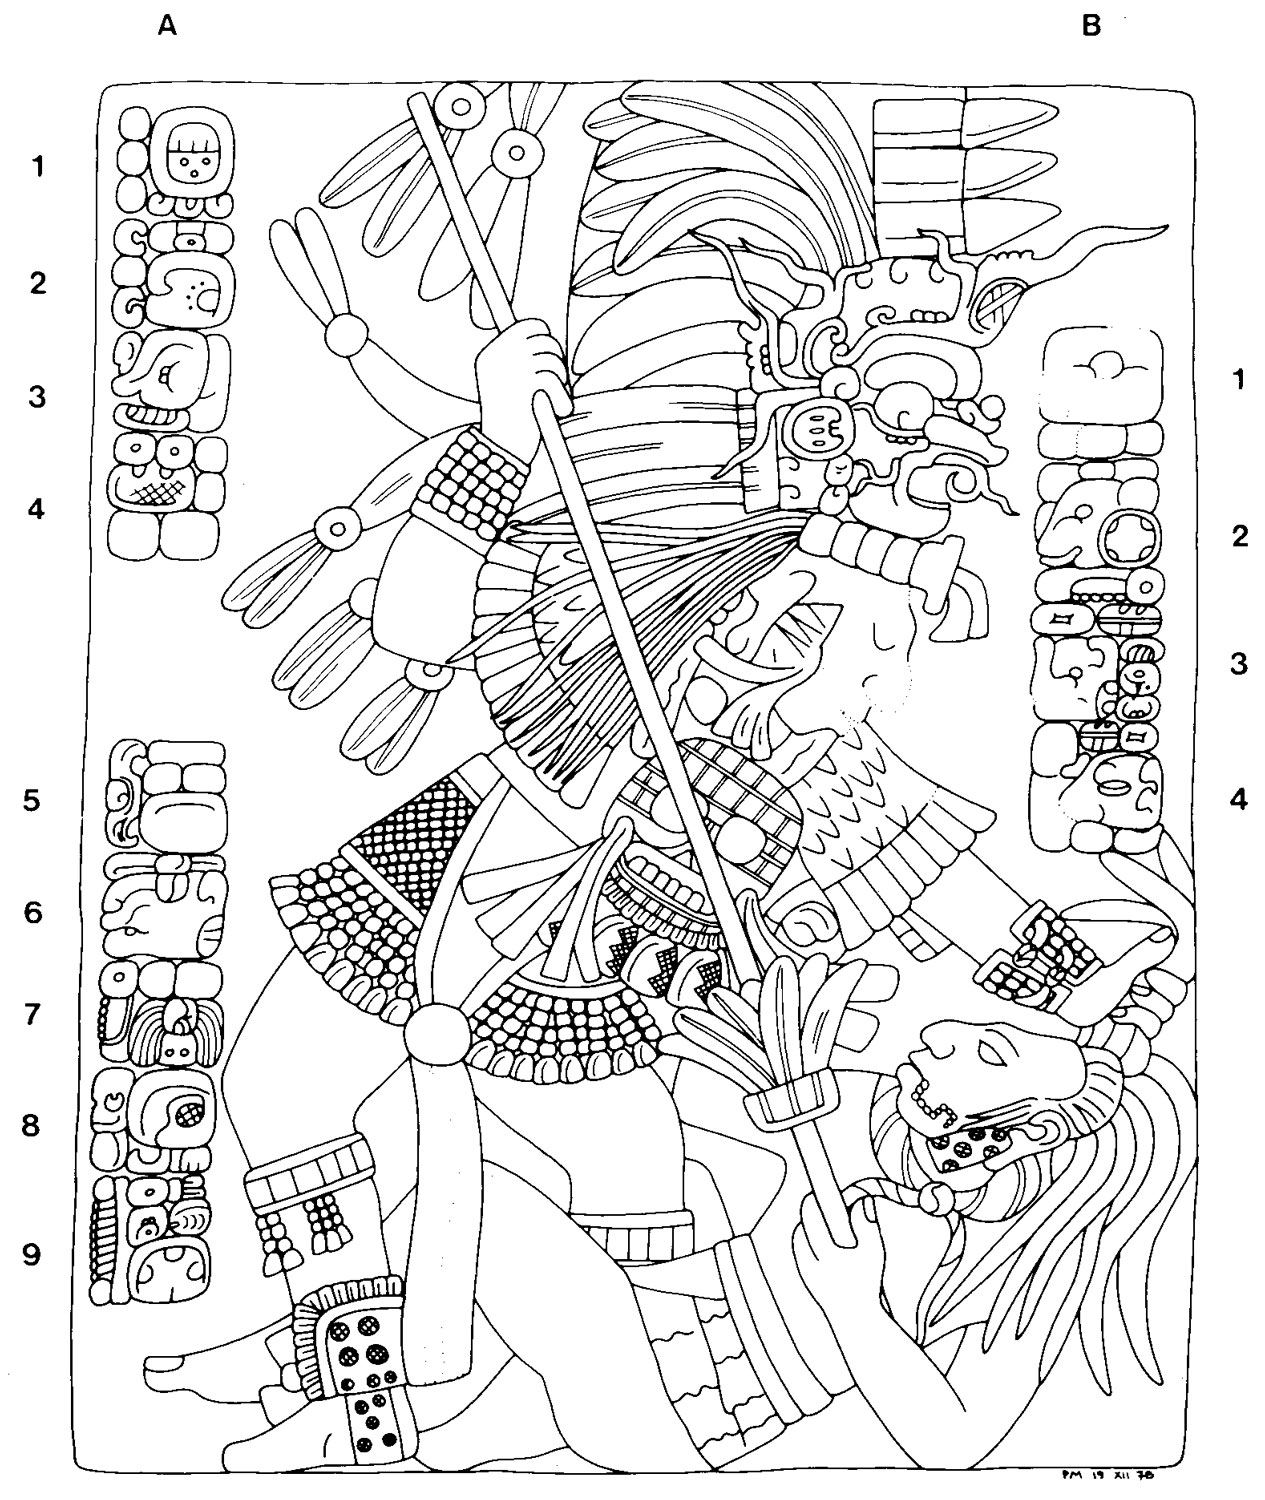 Lintel 3 depicts the Lizard King from Lacanjá in his own battle, capturing an enemy. Drawing by Peter Mathews. Source:  mesoweb.com .